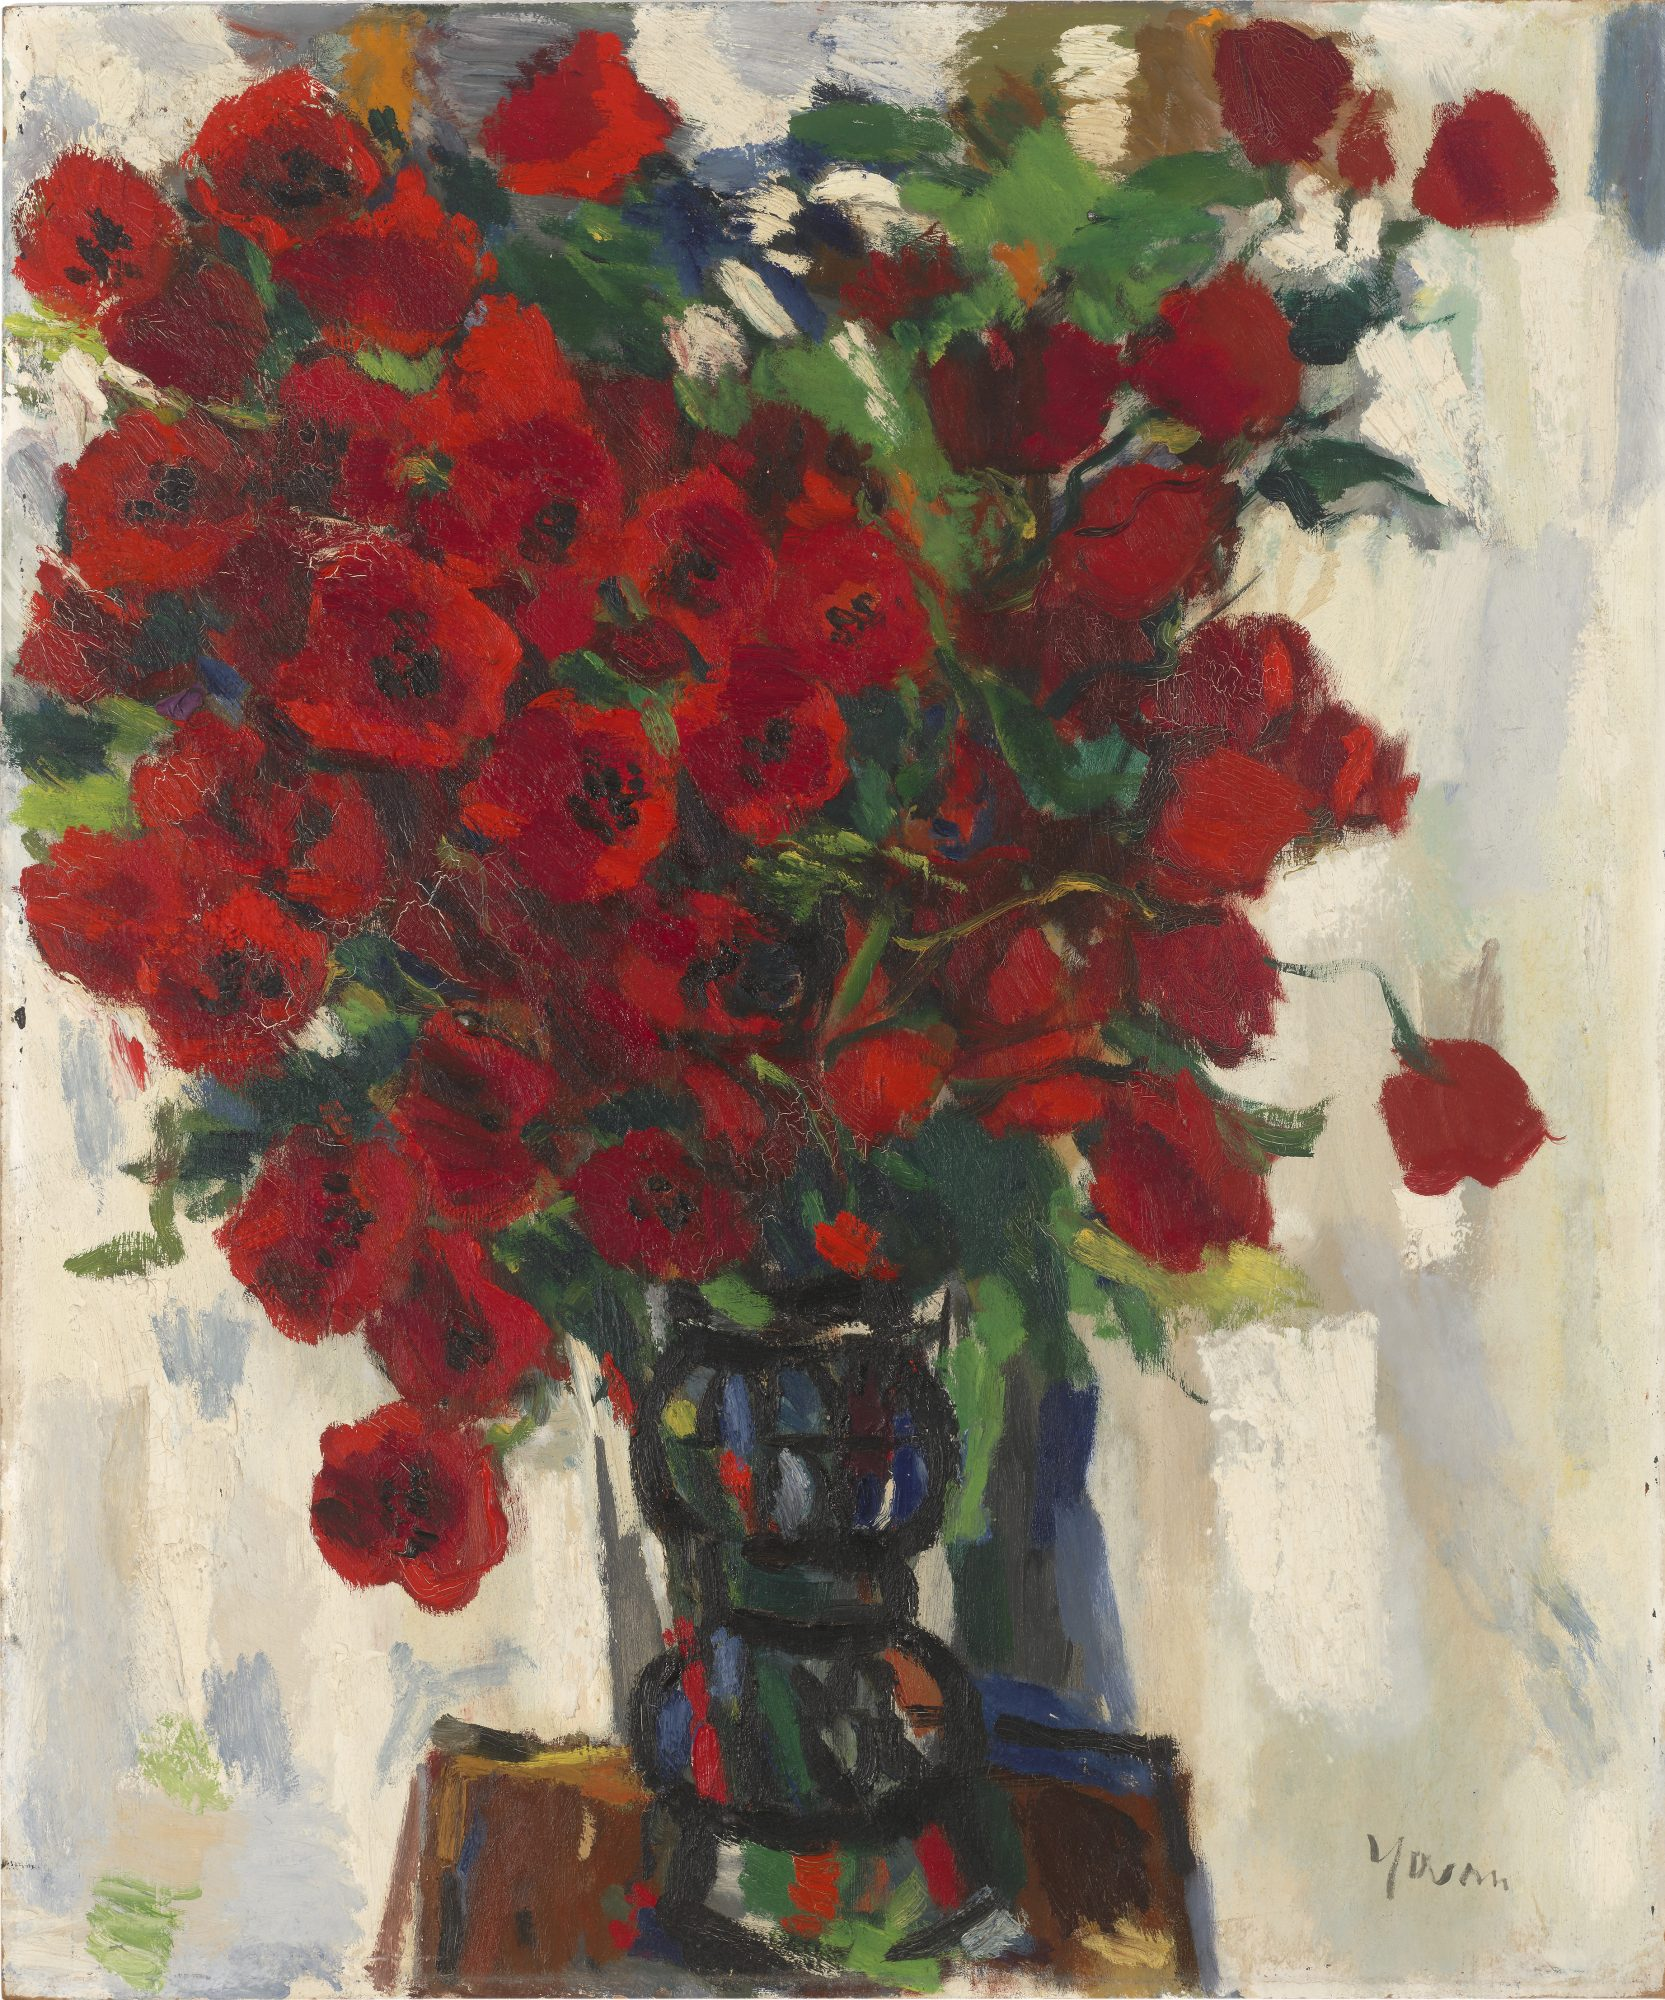 Yovan Radenkovitch (American, born Serbia, 1903–1979) Flower Piece-Poppies, After 1950. Oil on board. Gift of Mr. Seward Eric, 60.40